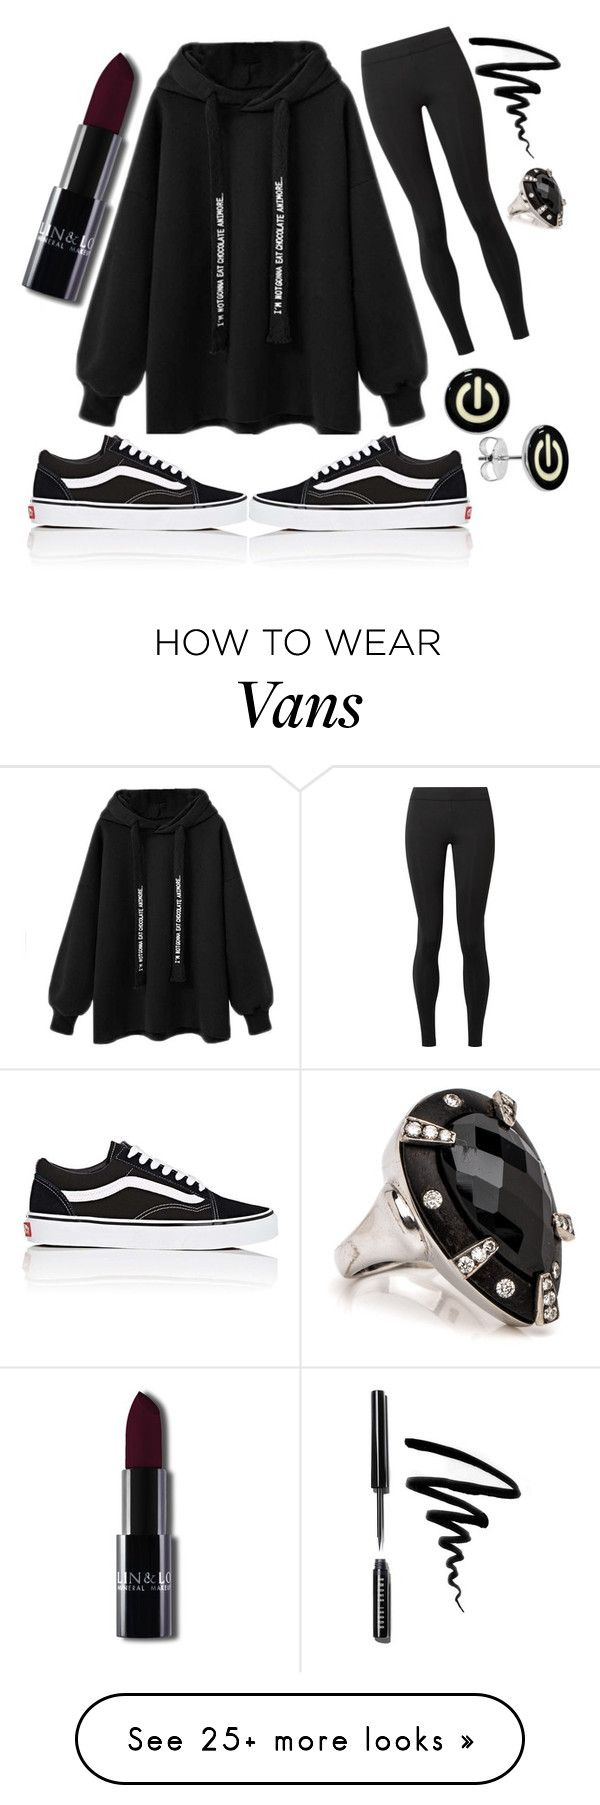 """""""Chillin'"""" by fashion-freak-julia on Polyvore featuring The Row, Vans and Bobbi Brown Cosmetics"""